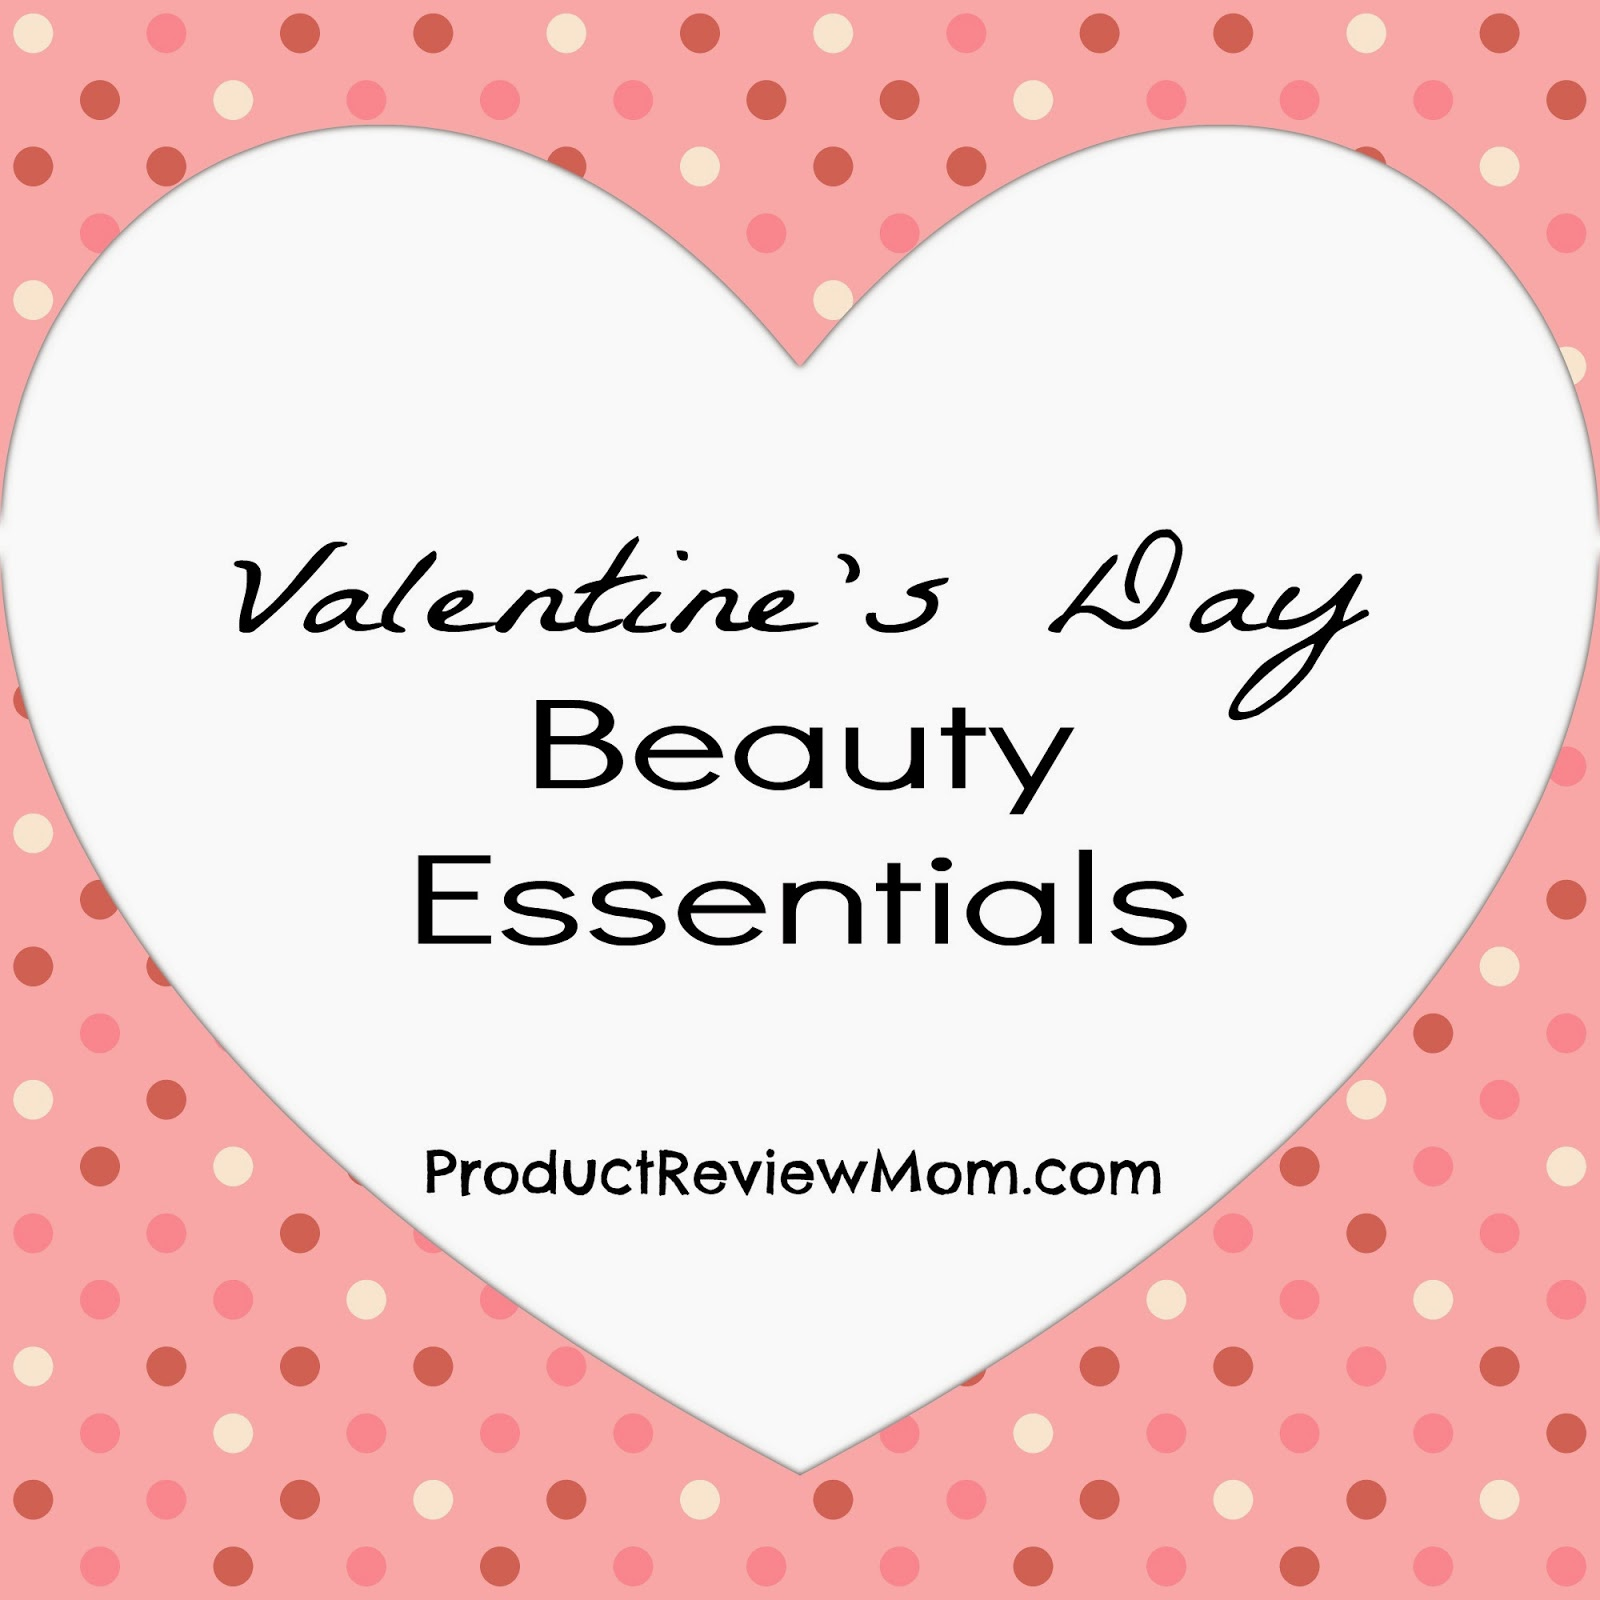 Valentine's Day Beauty Essentials via www.productreviewmom.com